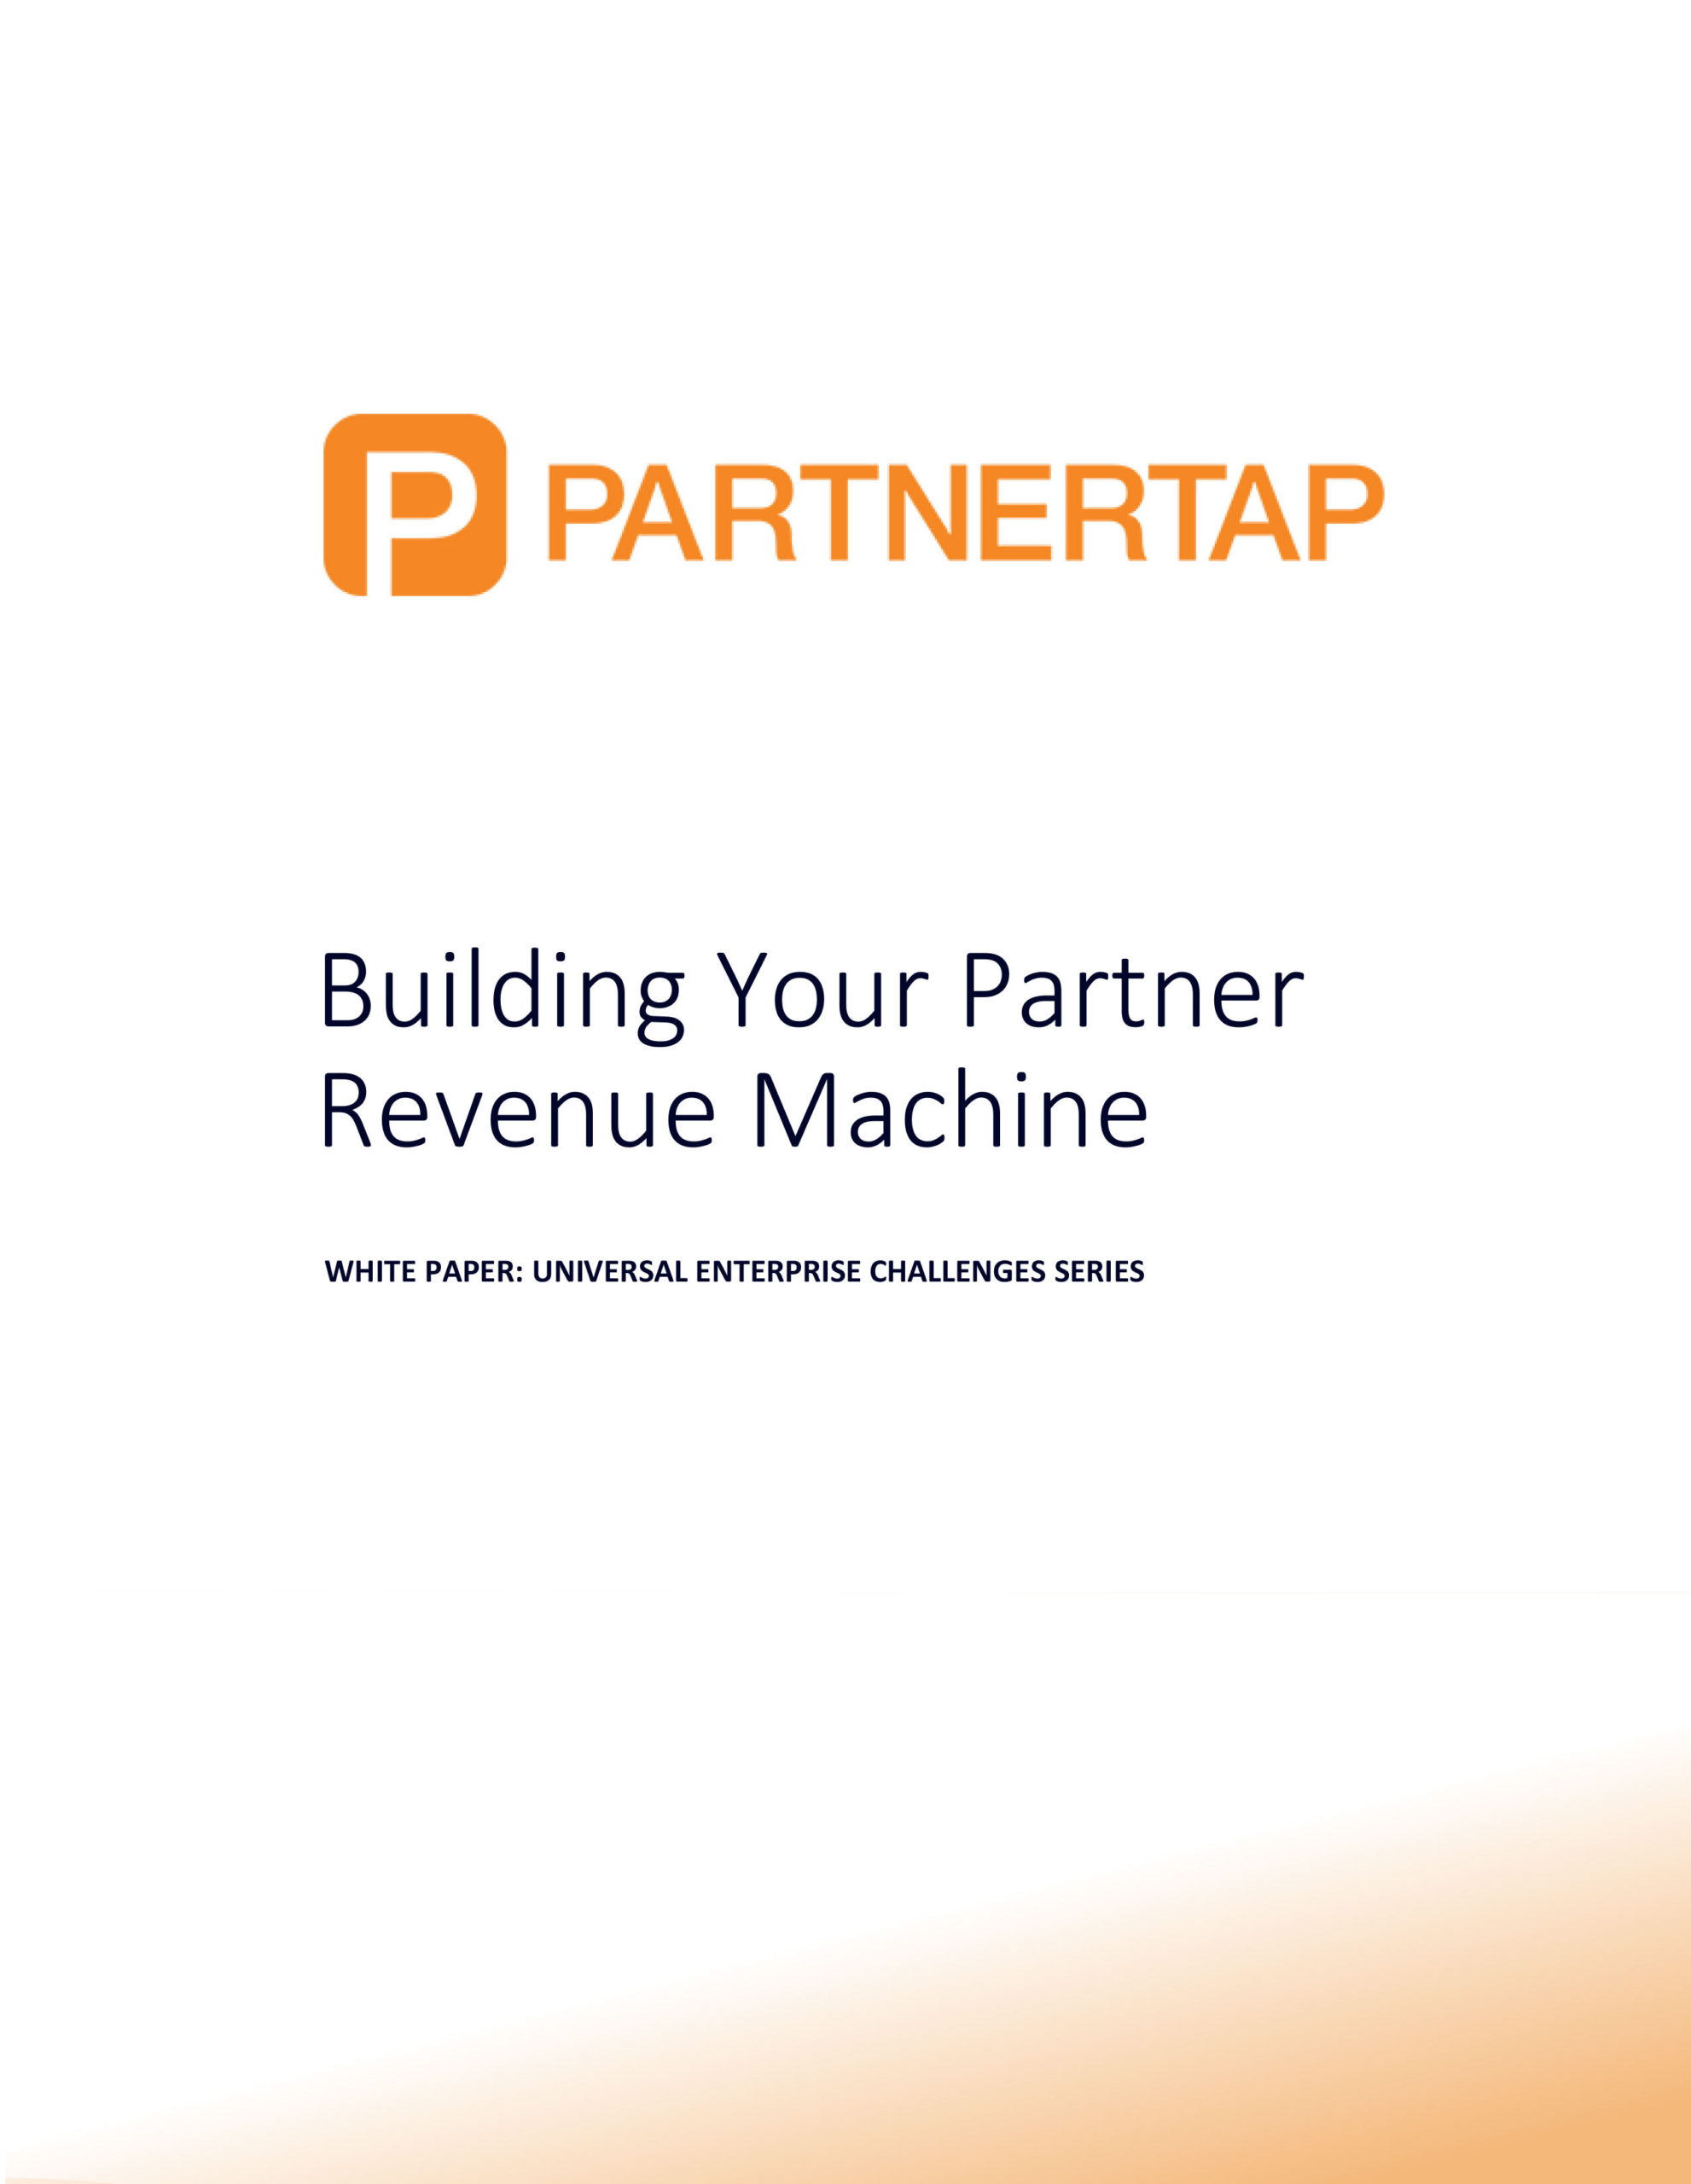 Cover image for building your partner revenue machine whitepaper